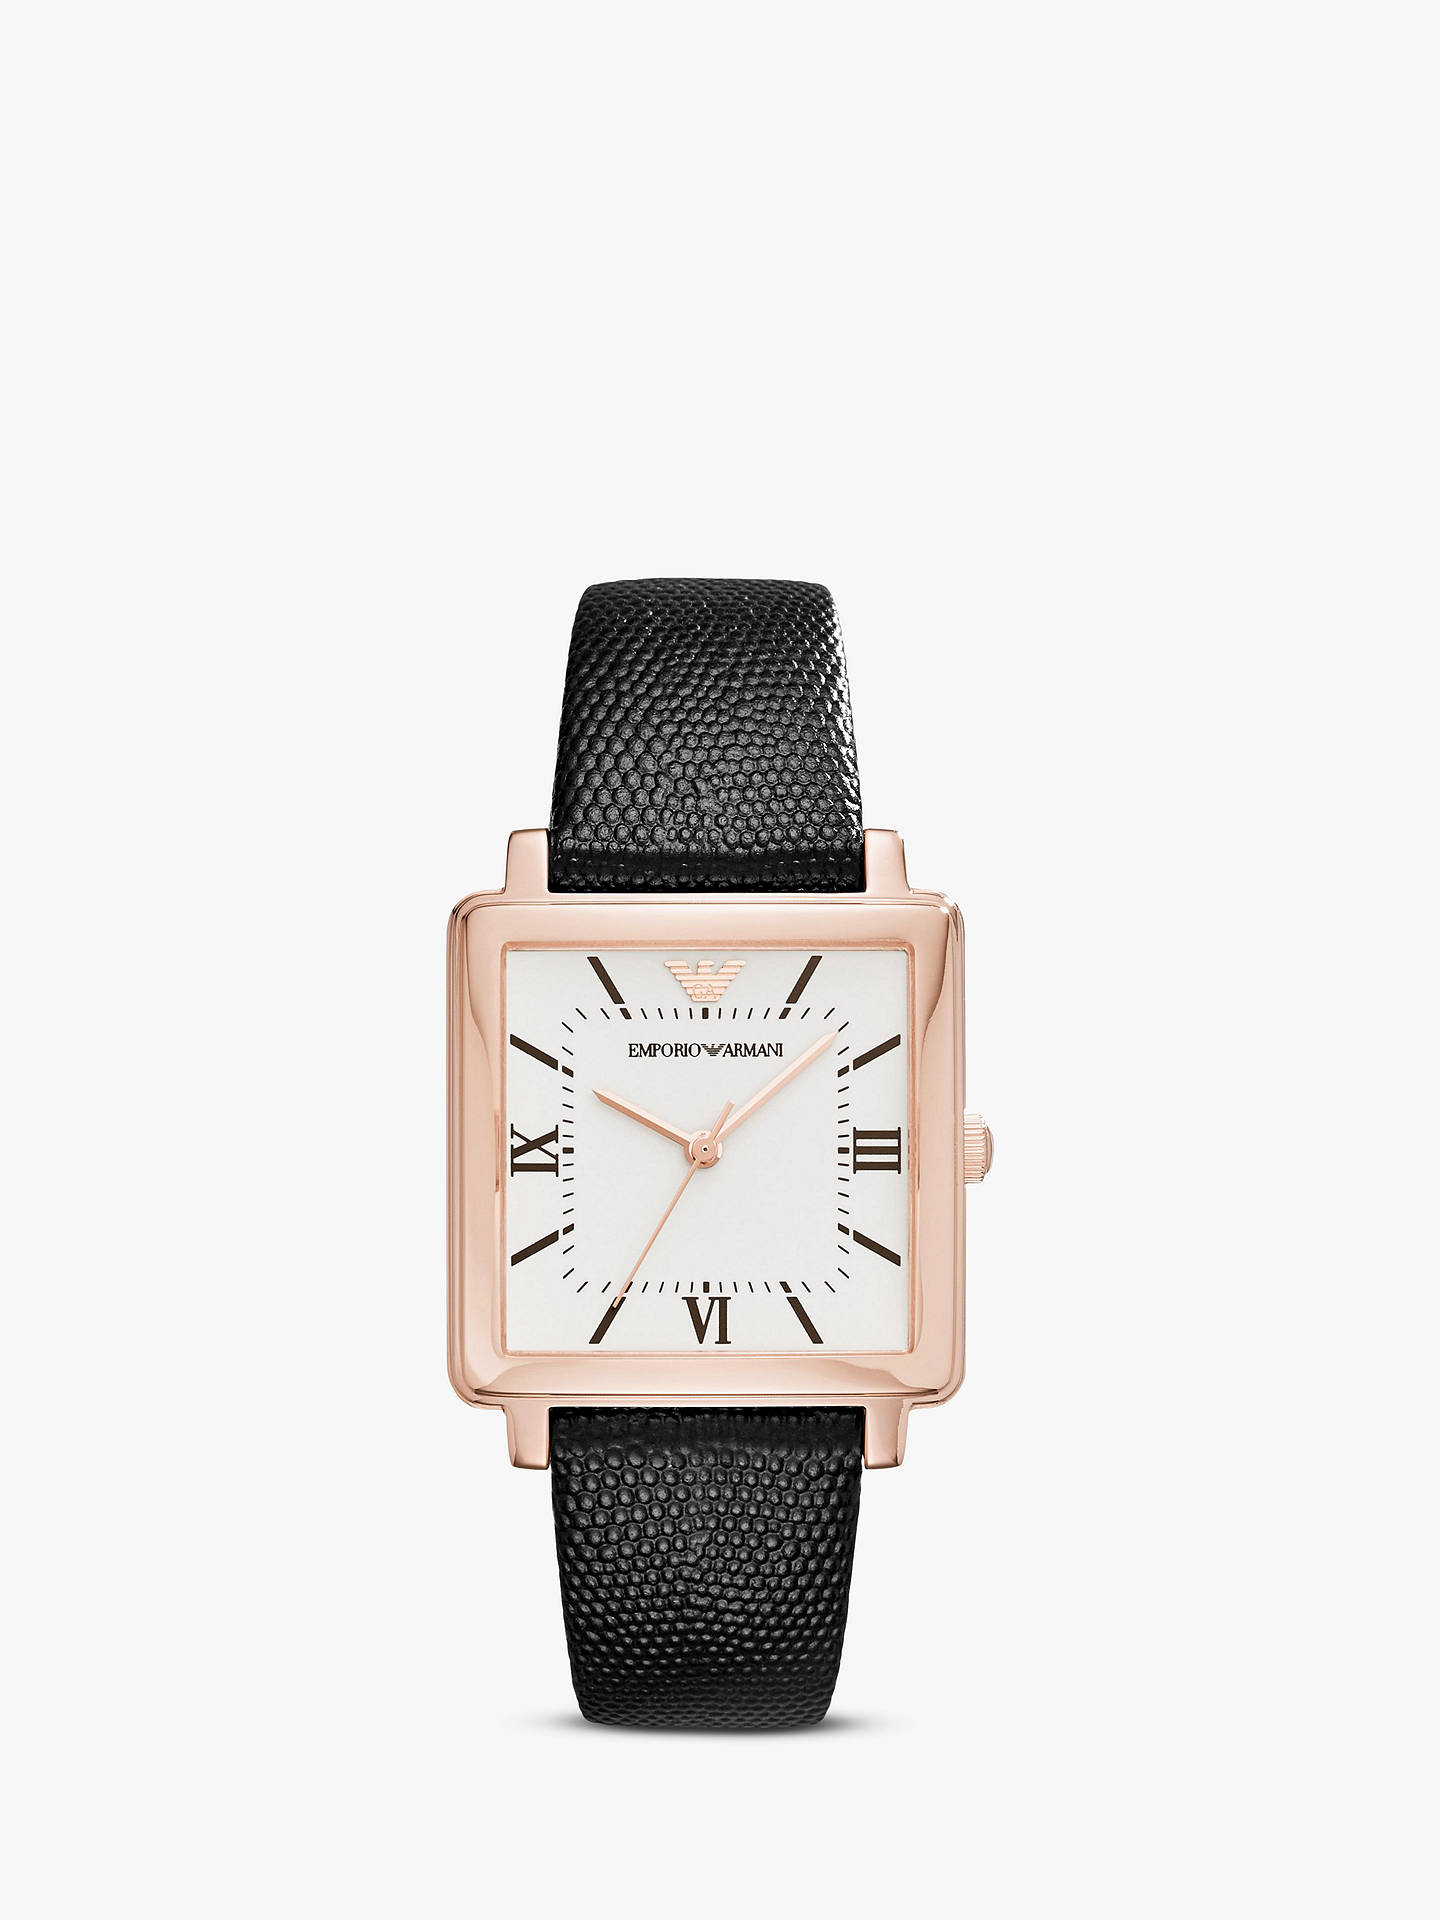 f31e2f6602814d Buy Emporio Armani AR11067 Women's Square Leather Strap Watch, Black/White  Online at johnlewis ...